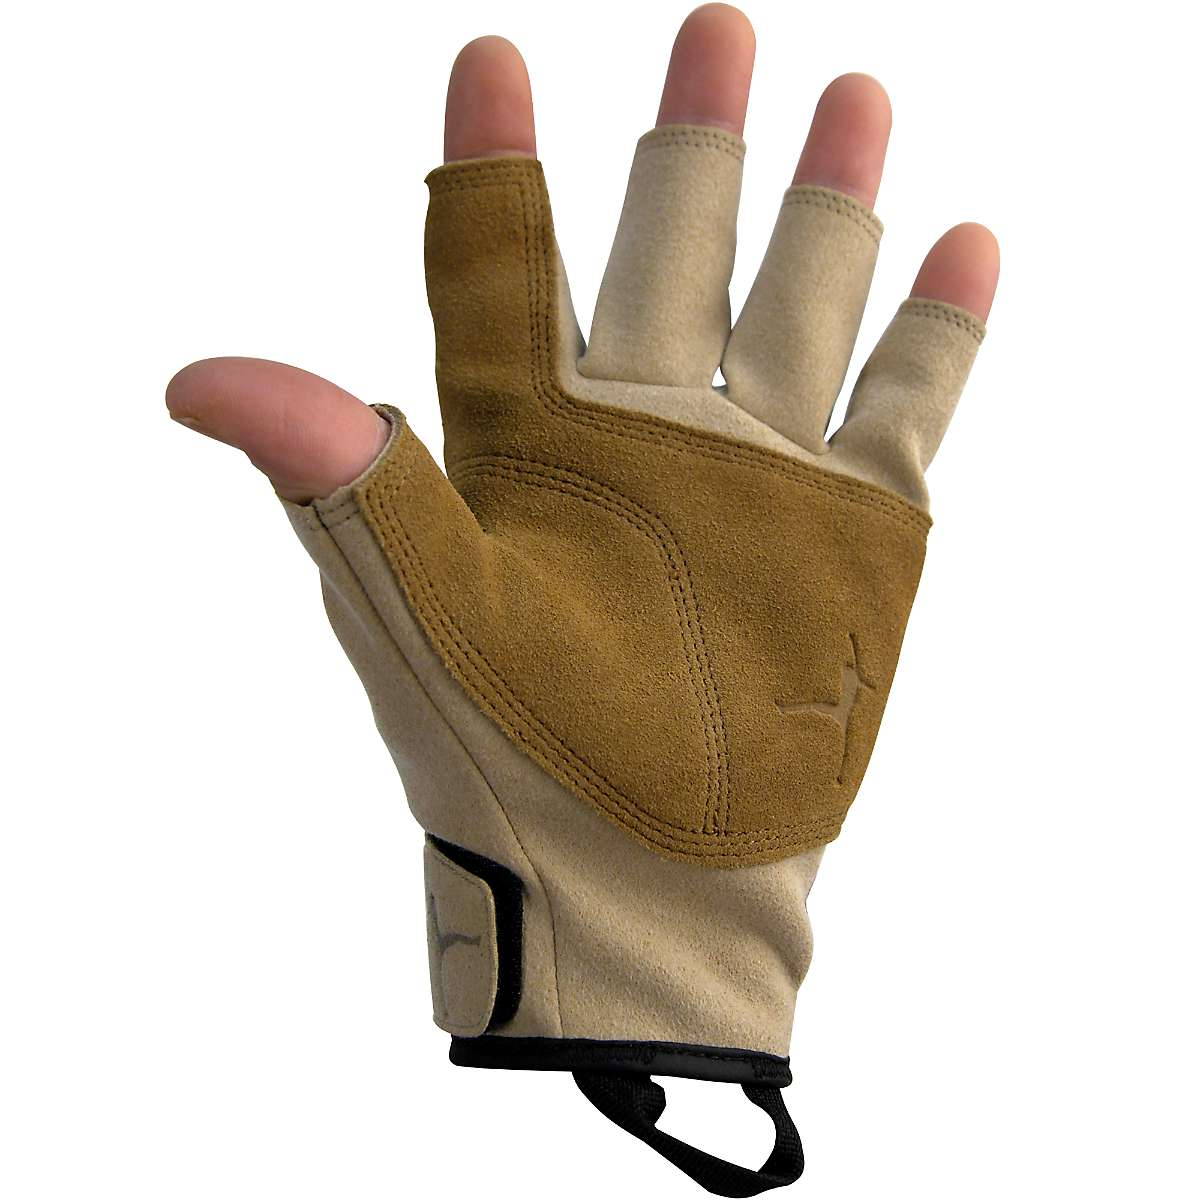 METOLIUS Iron Hand Gloves 3/4 Finger